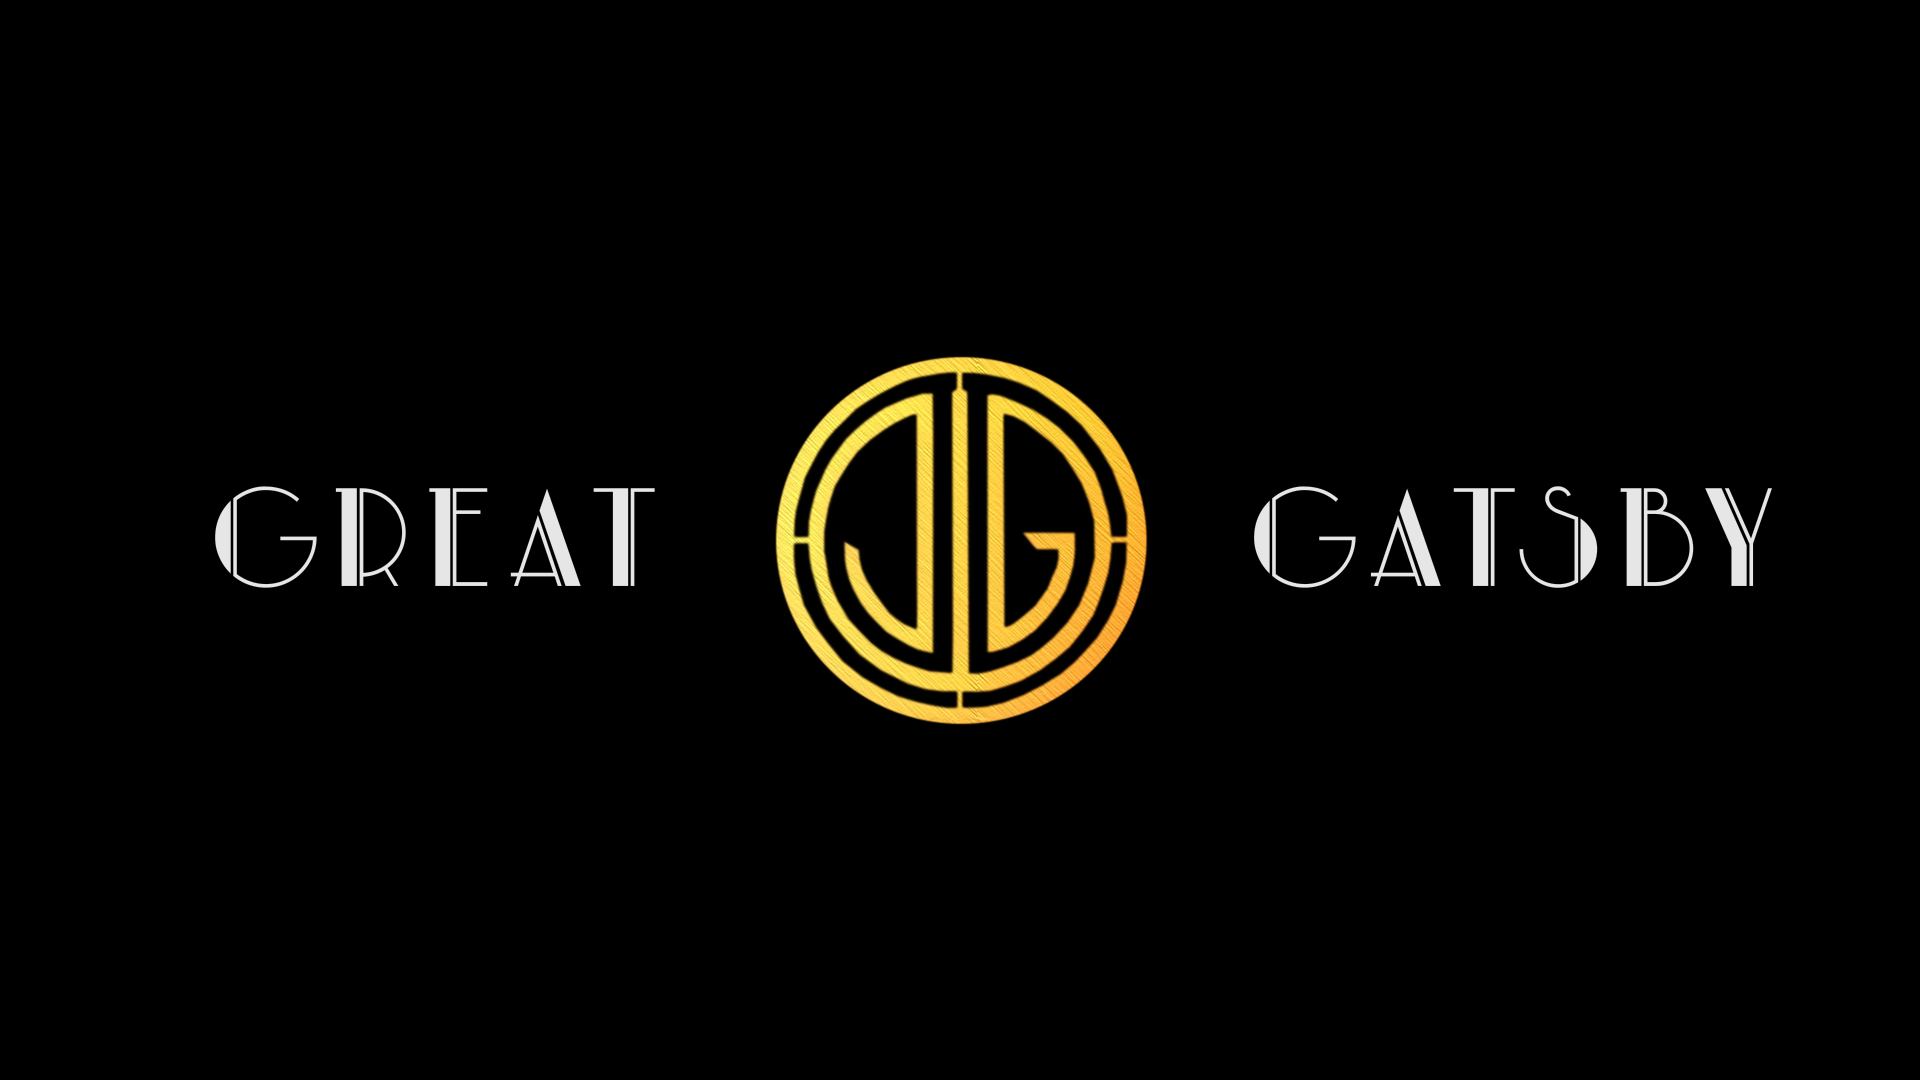 3 The Great Gatsby HD Wallpapers